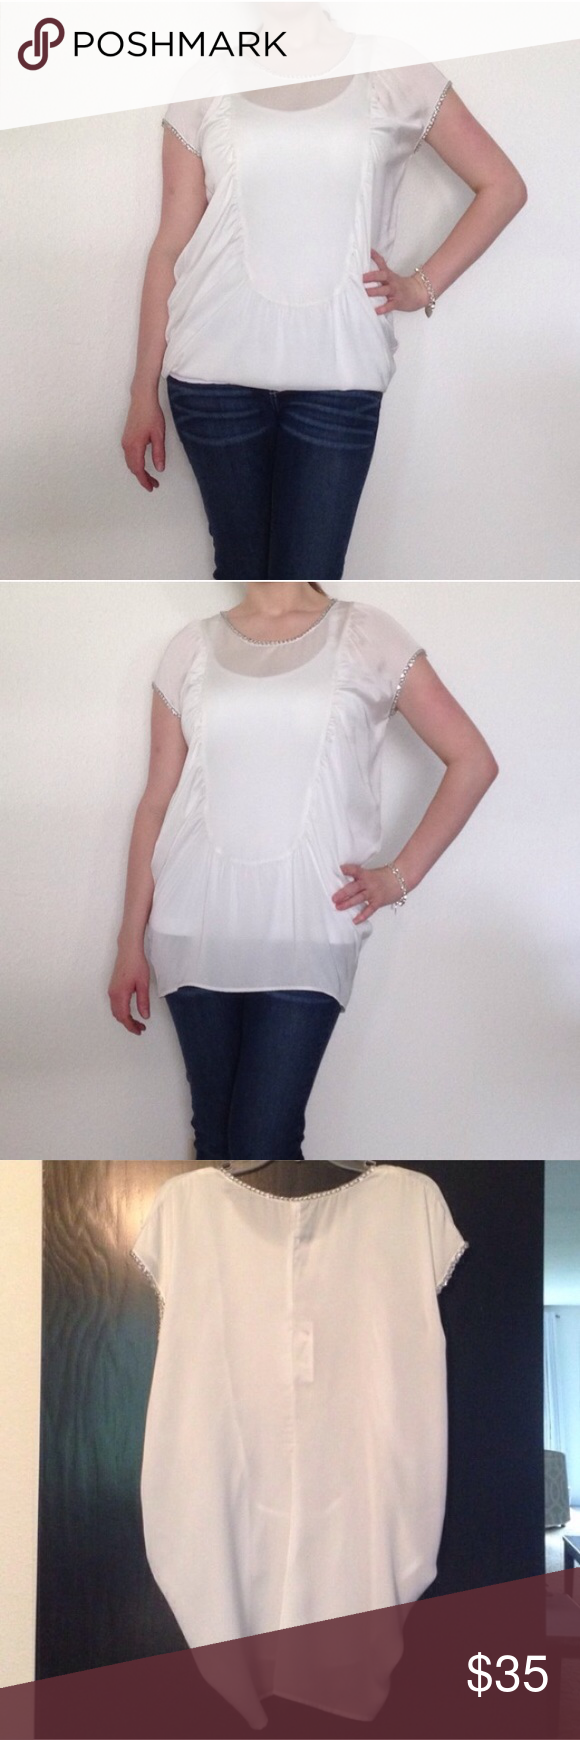 "Umgee Silky Top with Chain Lining Beautiful white silky tunic. Neckline and sleeves lined with chains.                                      Size small.   55% cotton 45% polyester. No stretch.    Bust- 22"".  Length- 29"" Umgee Tops Tunics"